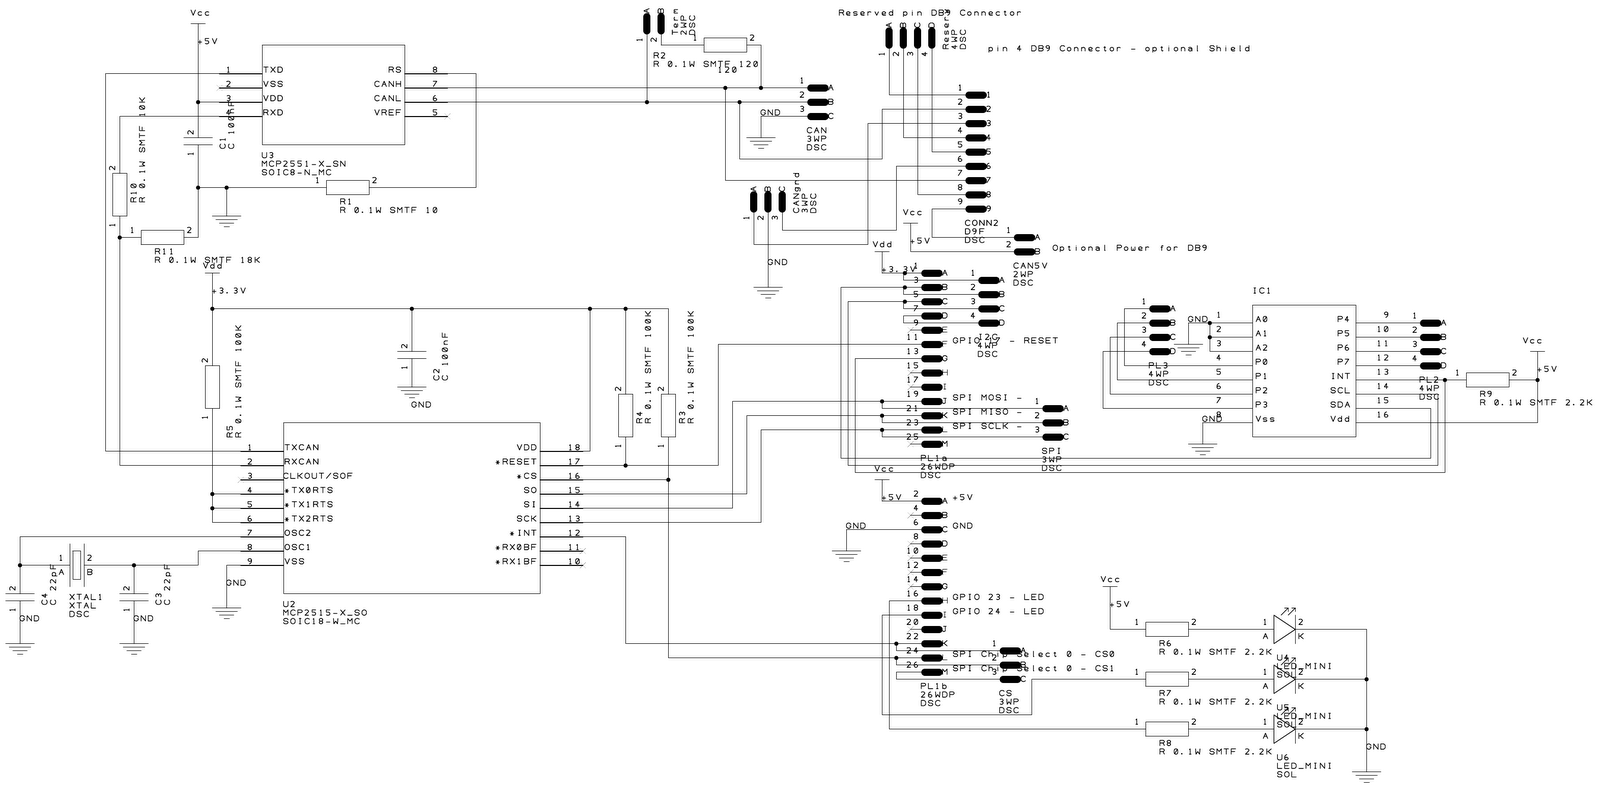 small resolution of schematic design of pcb board with all components version 0 1 incorrect requires modification